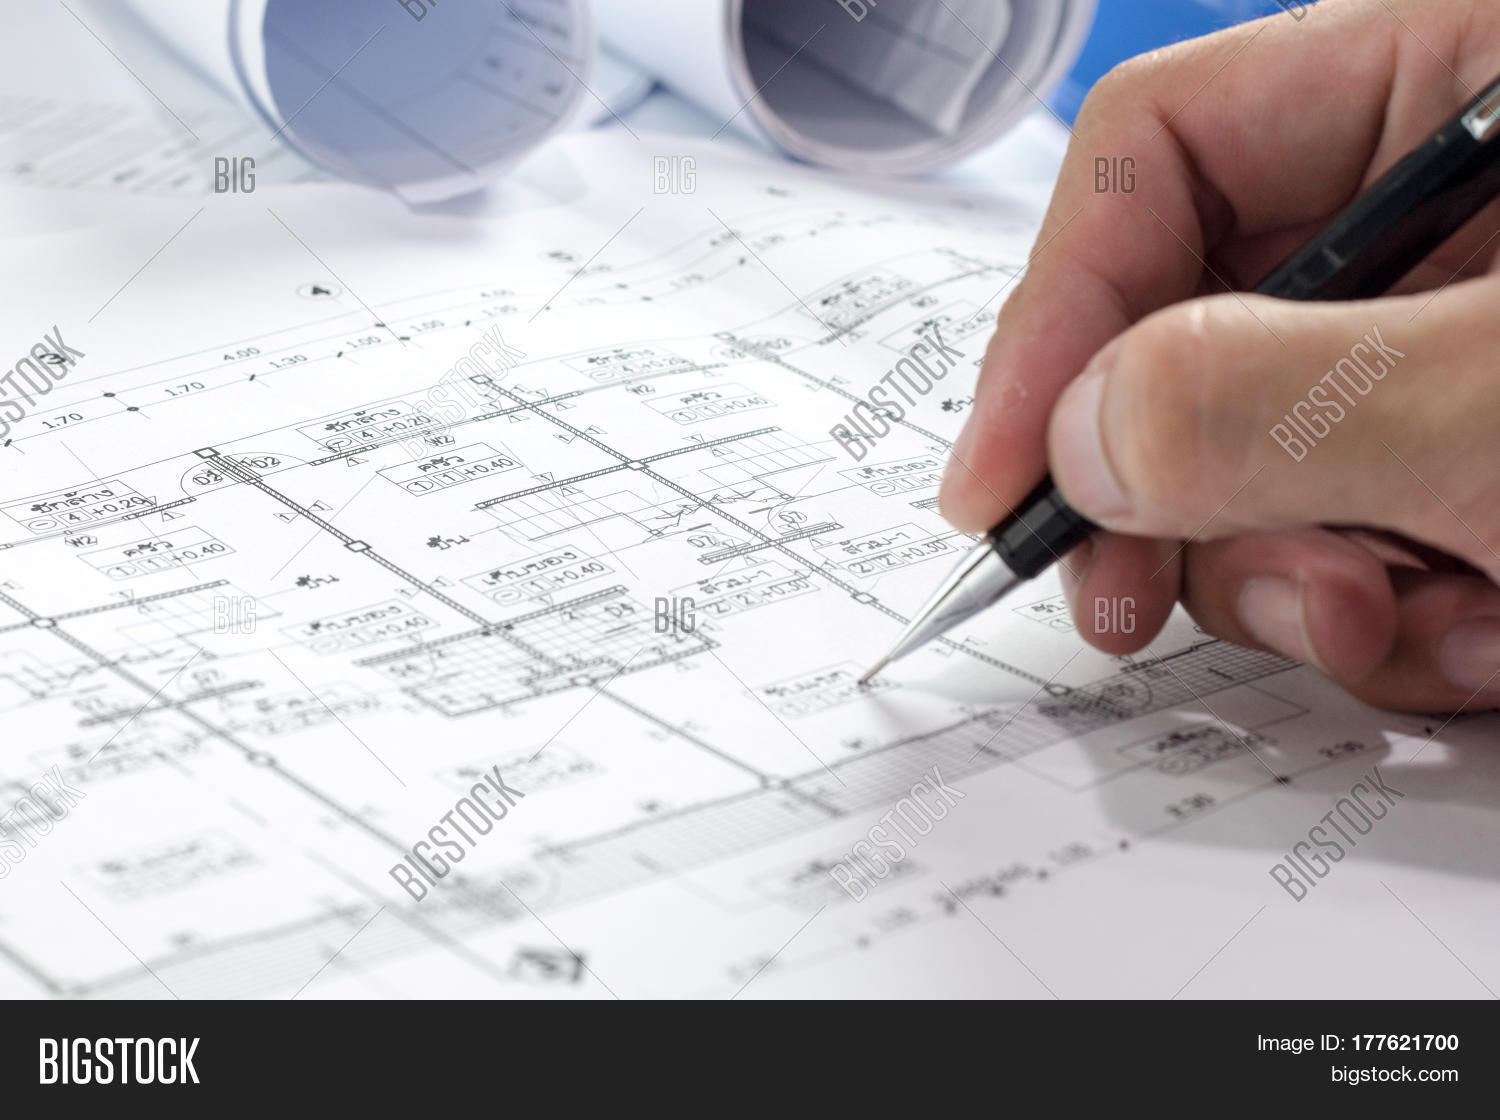 Engineering diagram blueprint paper image photo bigstock engineering diagram blueprint paper drafting project sketch architecturalselective focus malvernweather Choice Image